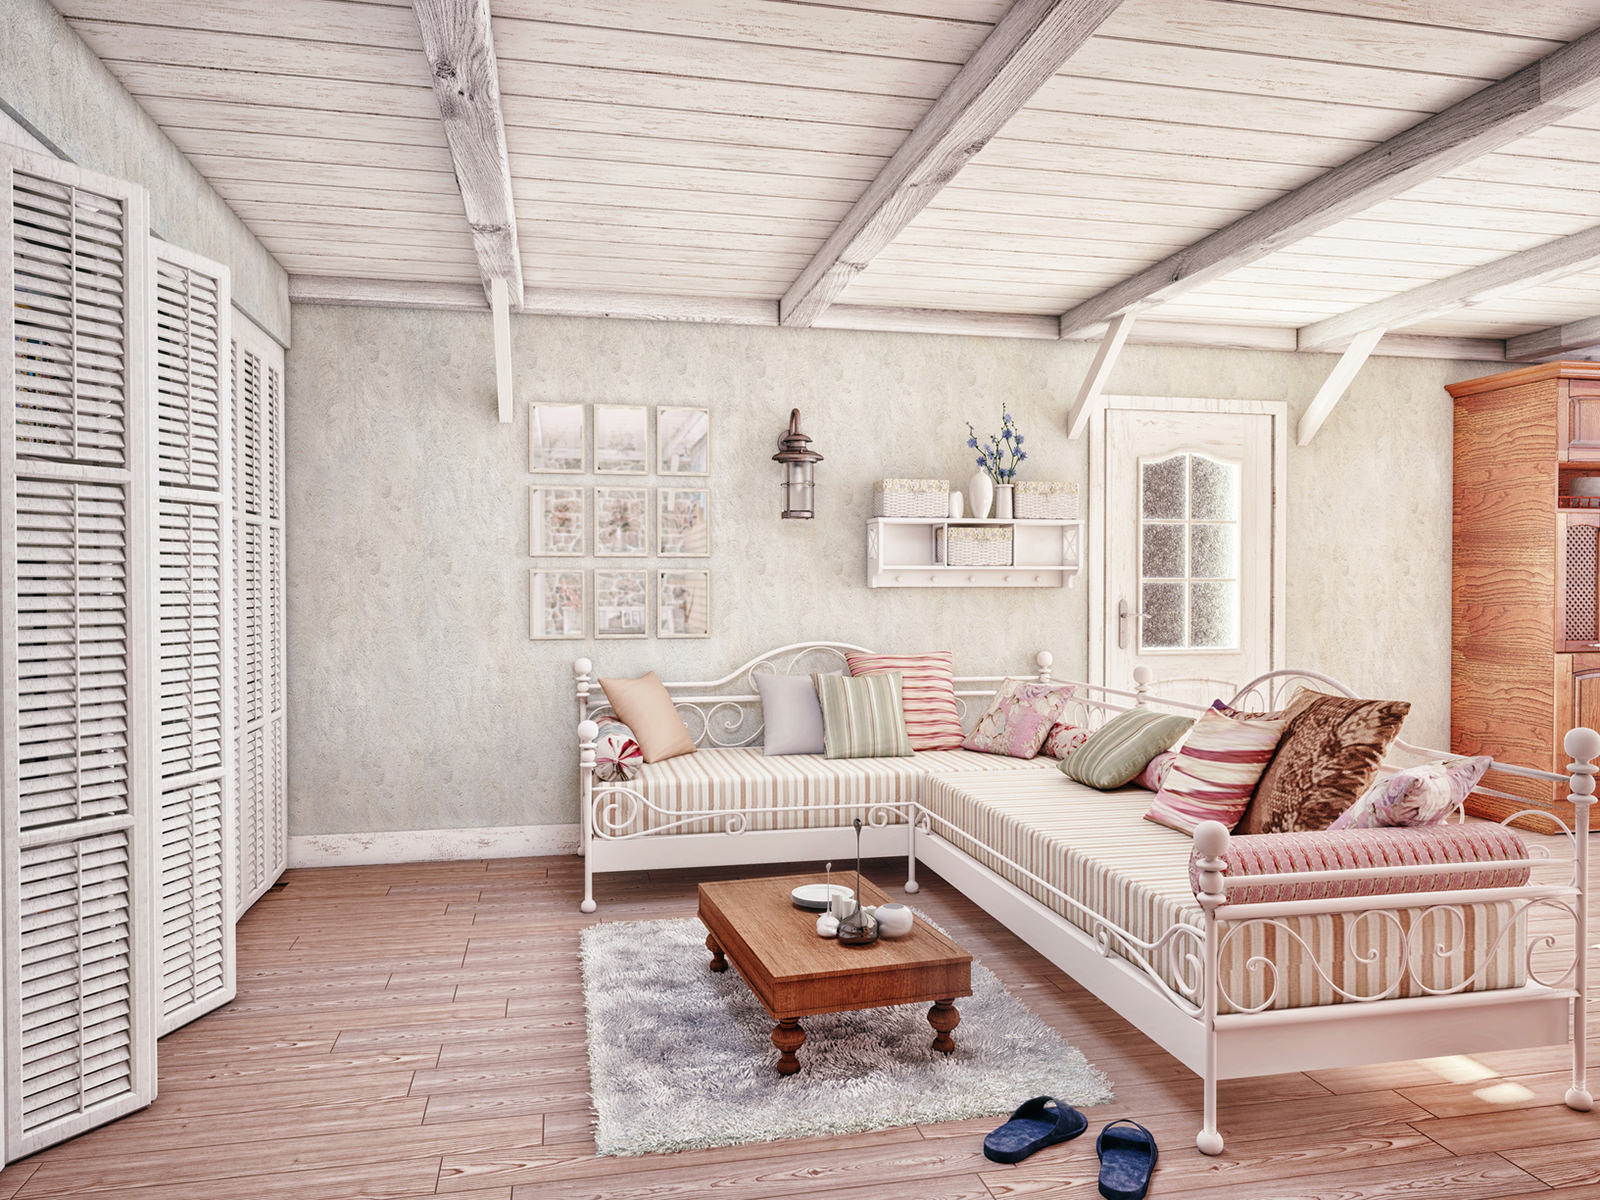 Provence style interior (3D rendering)